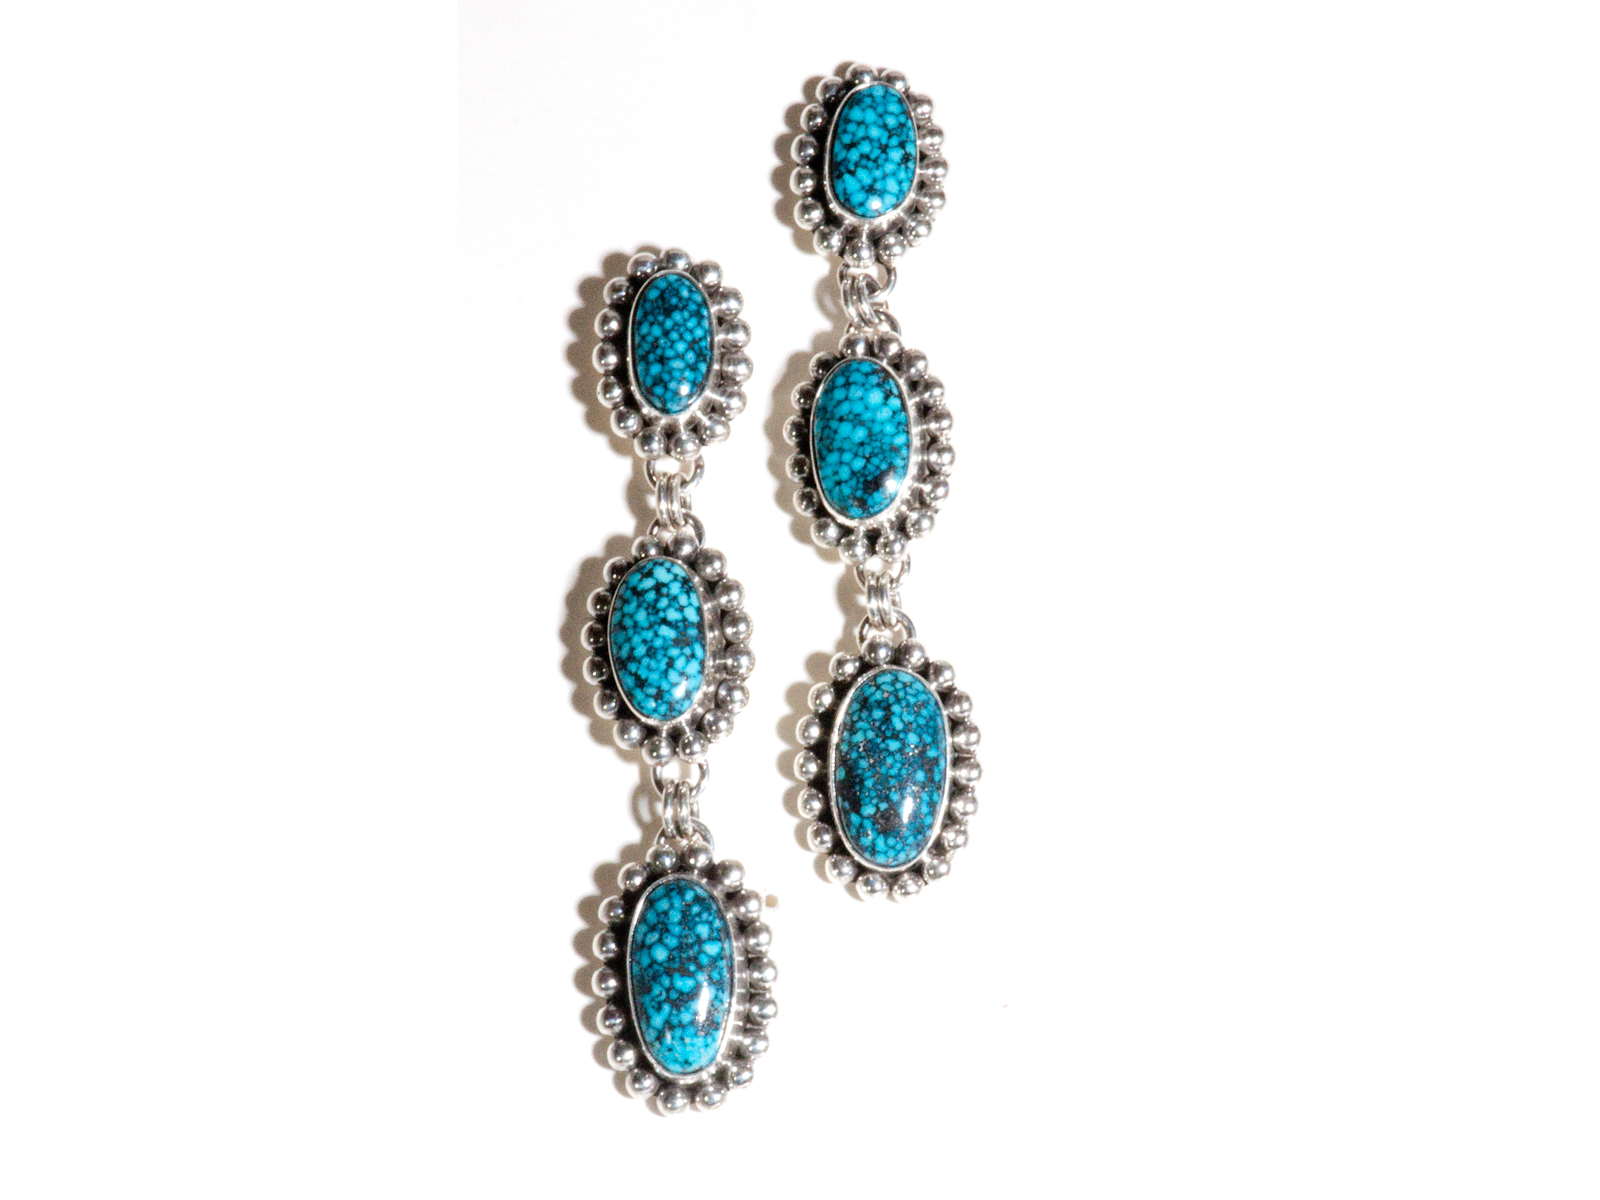 Spiderweb Kingman Turquoise Earrings